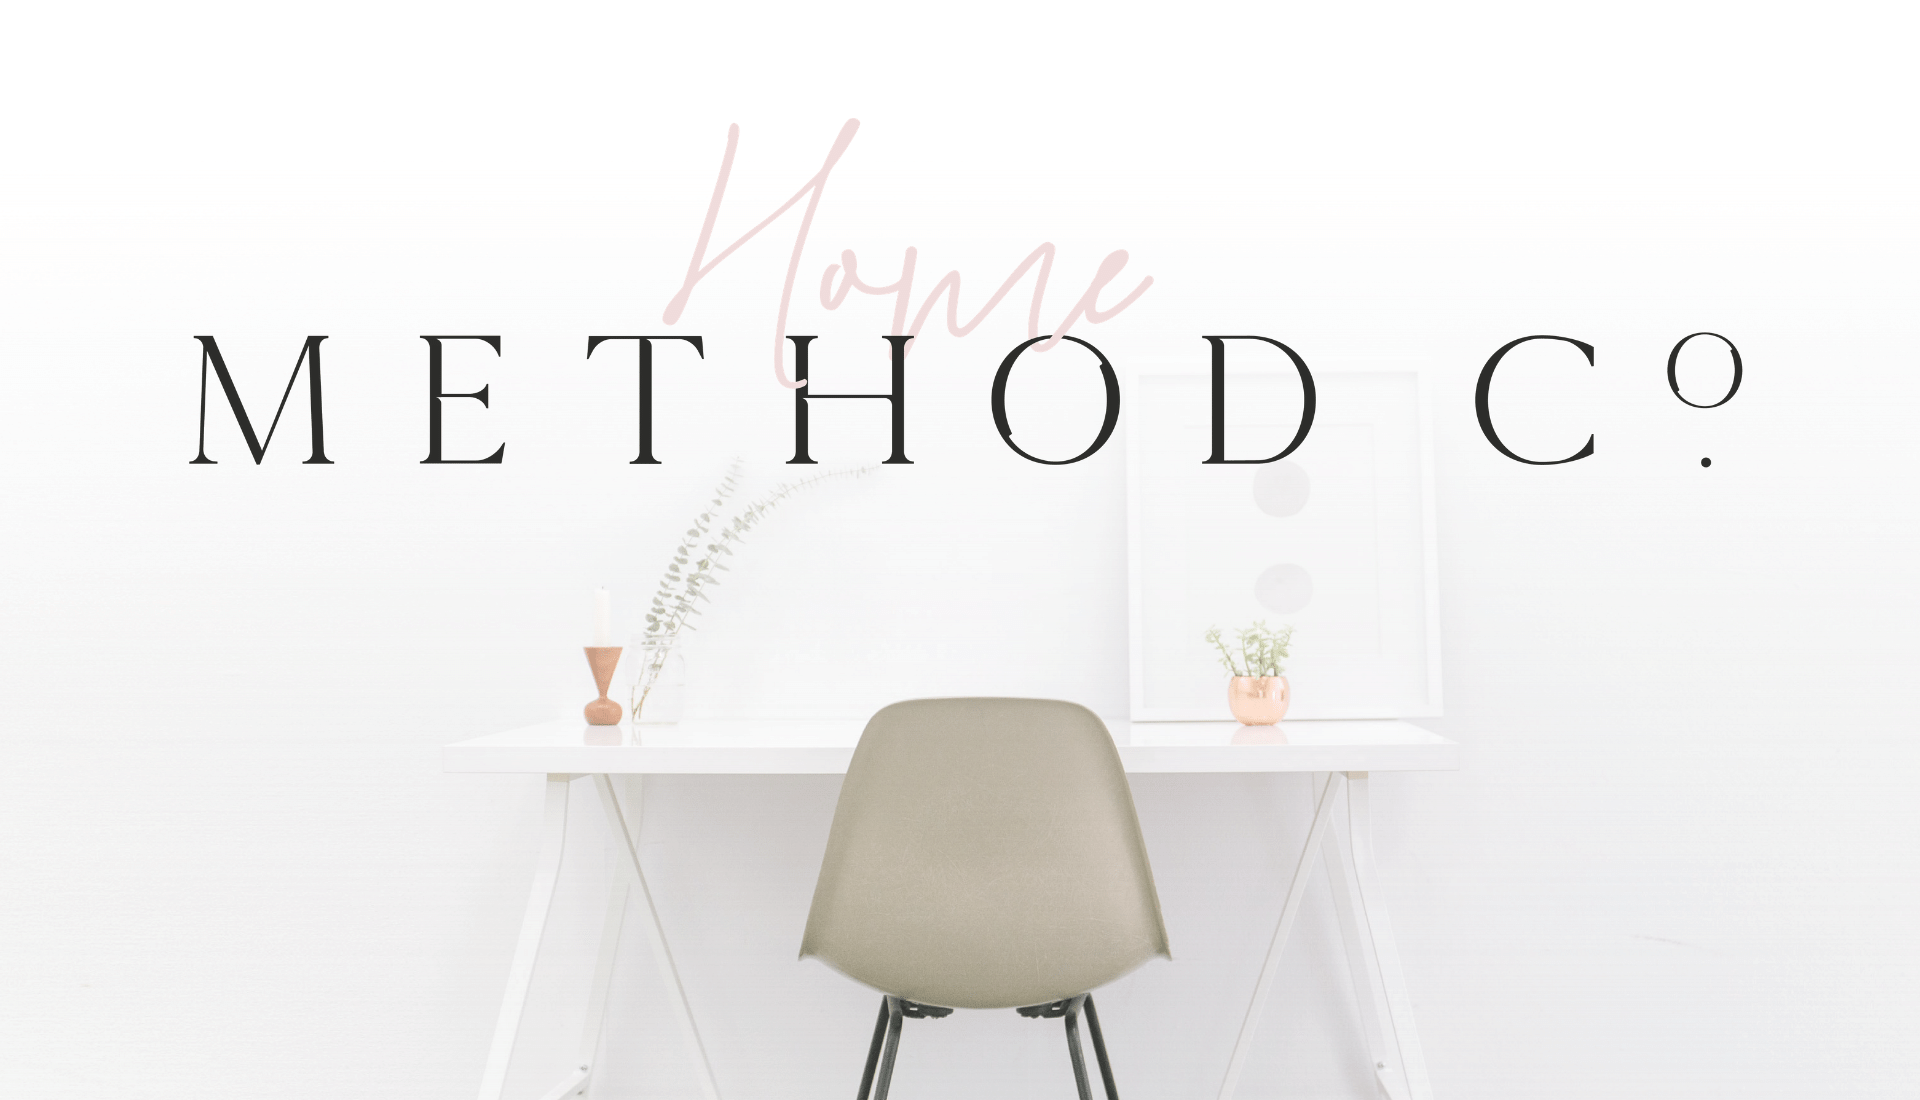 home method co. story templates (6)